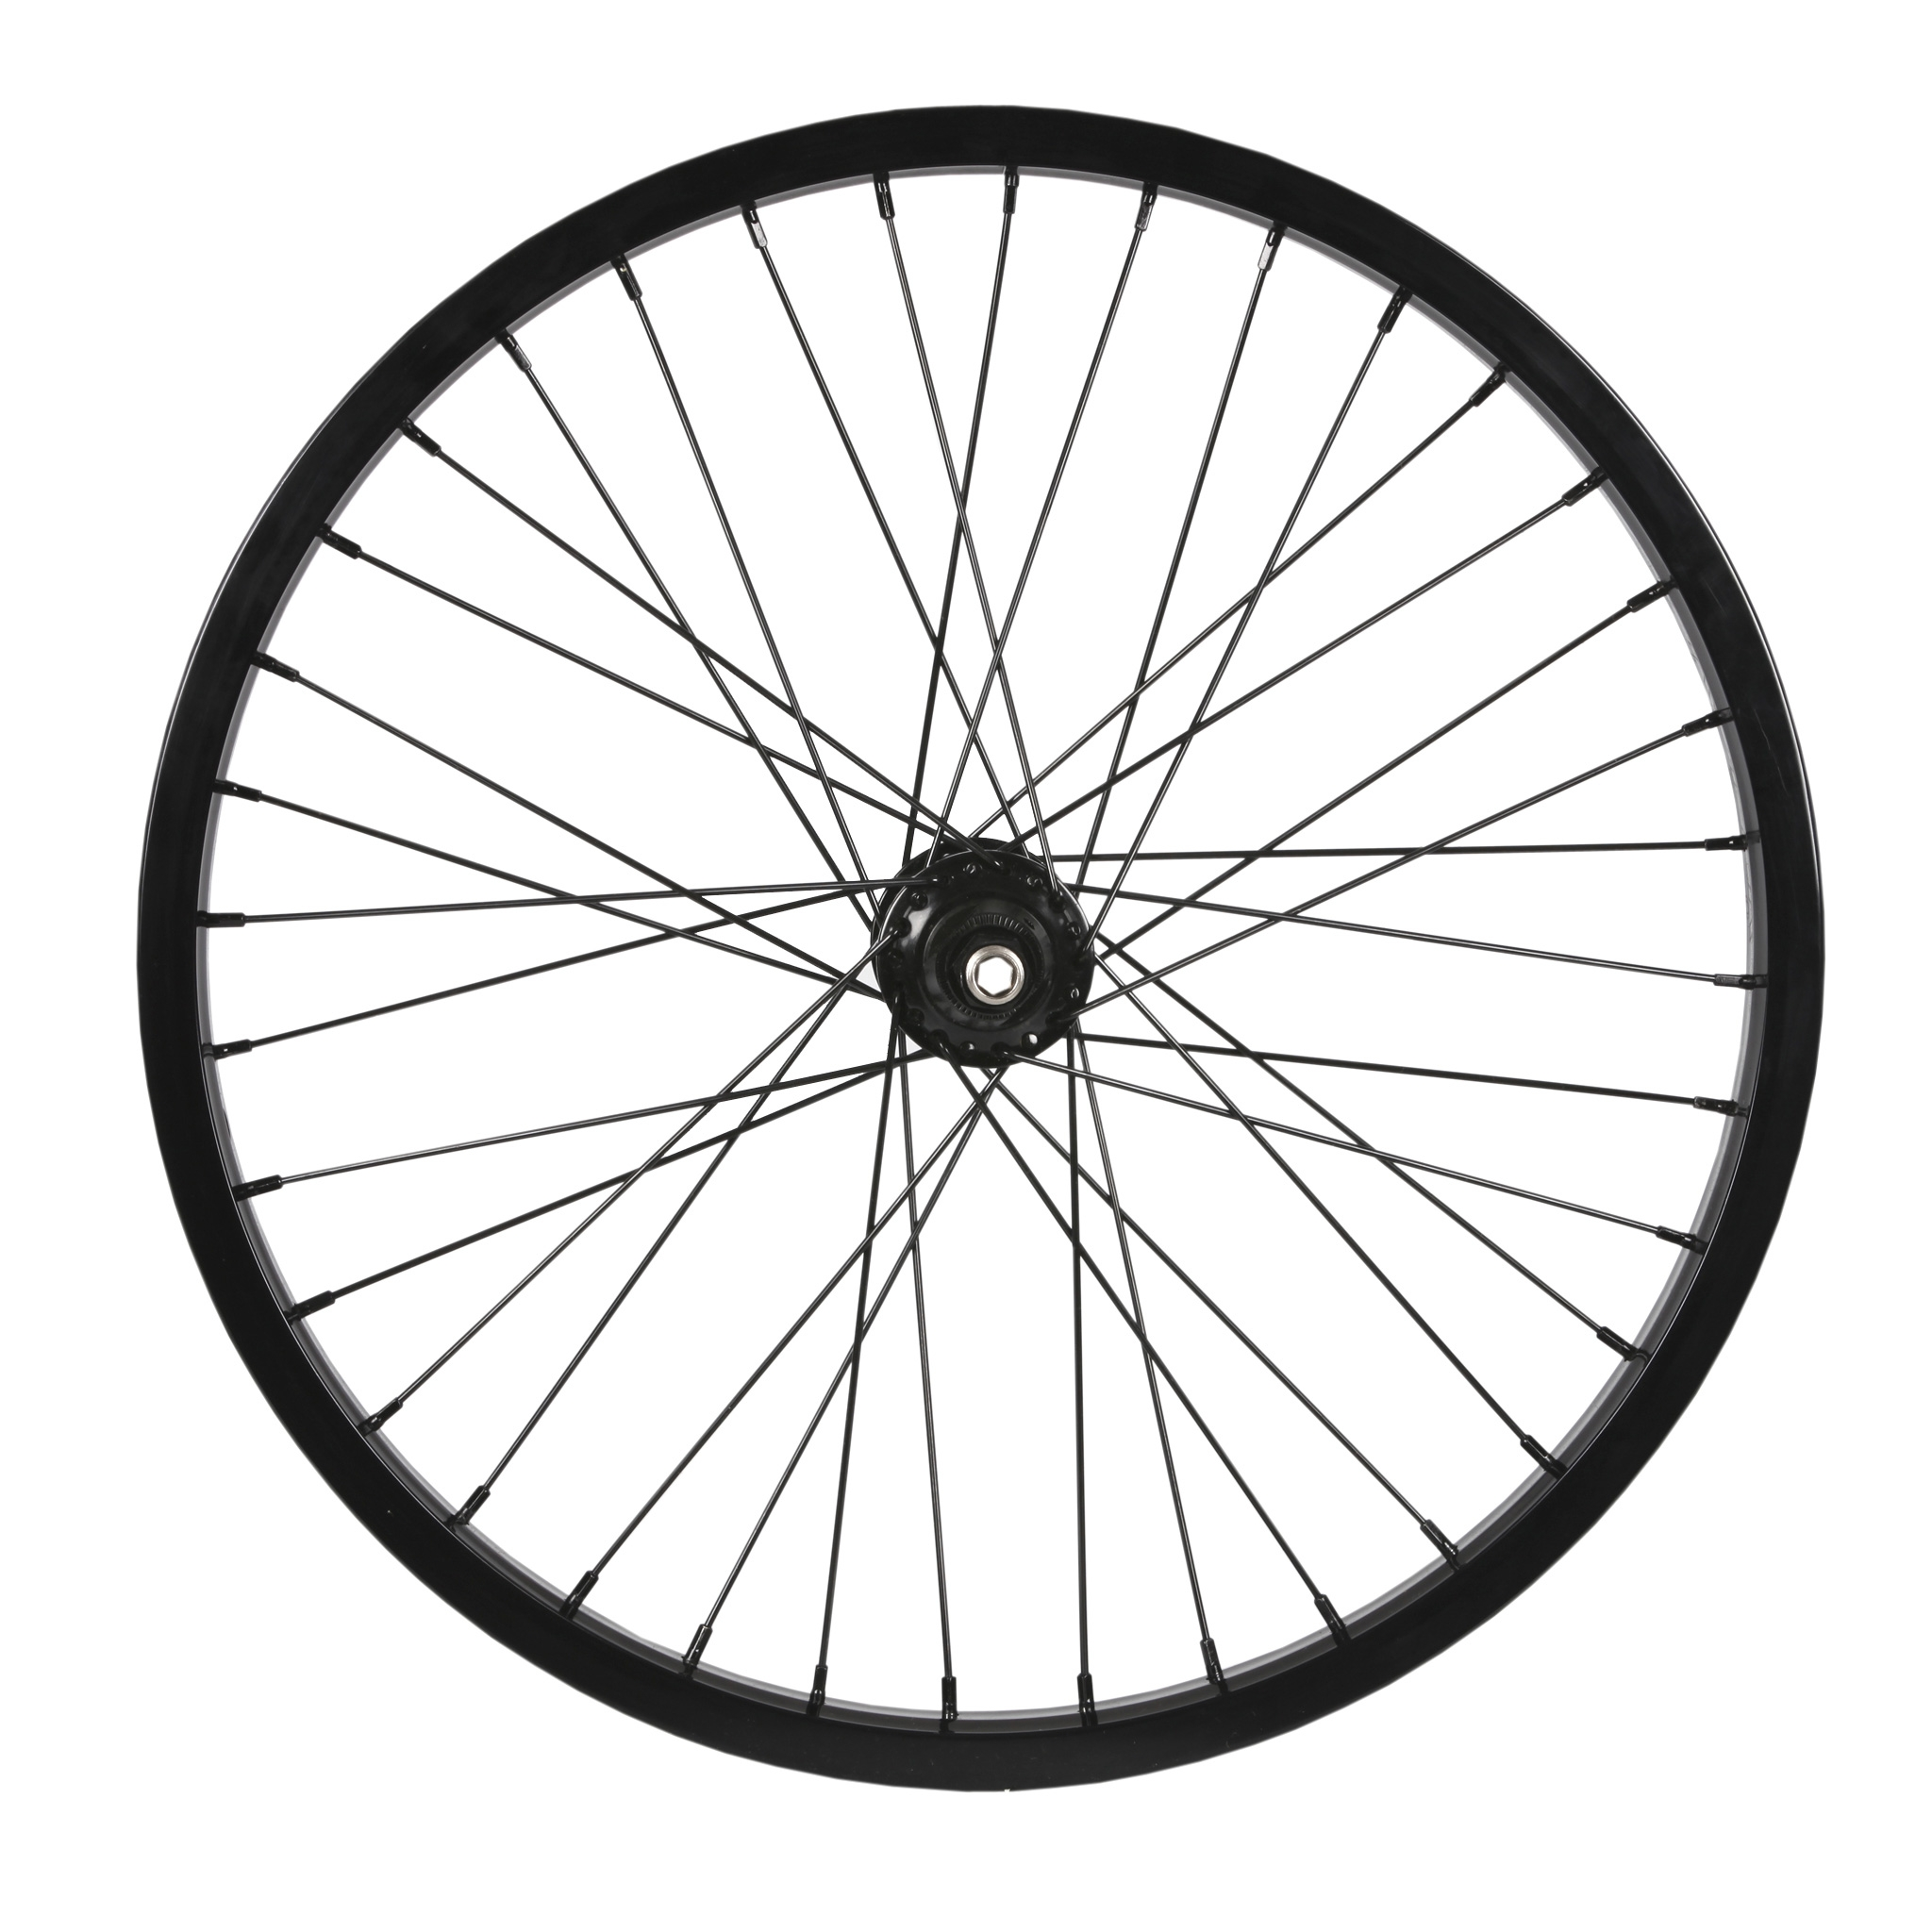 Bicycle Spokes Clipart 20 Free Cliparts